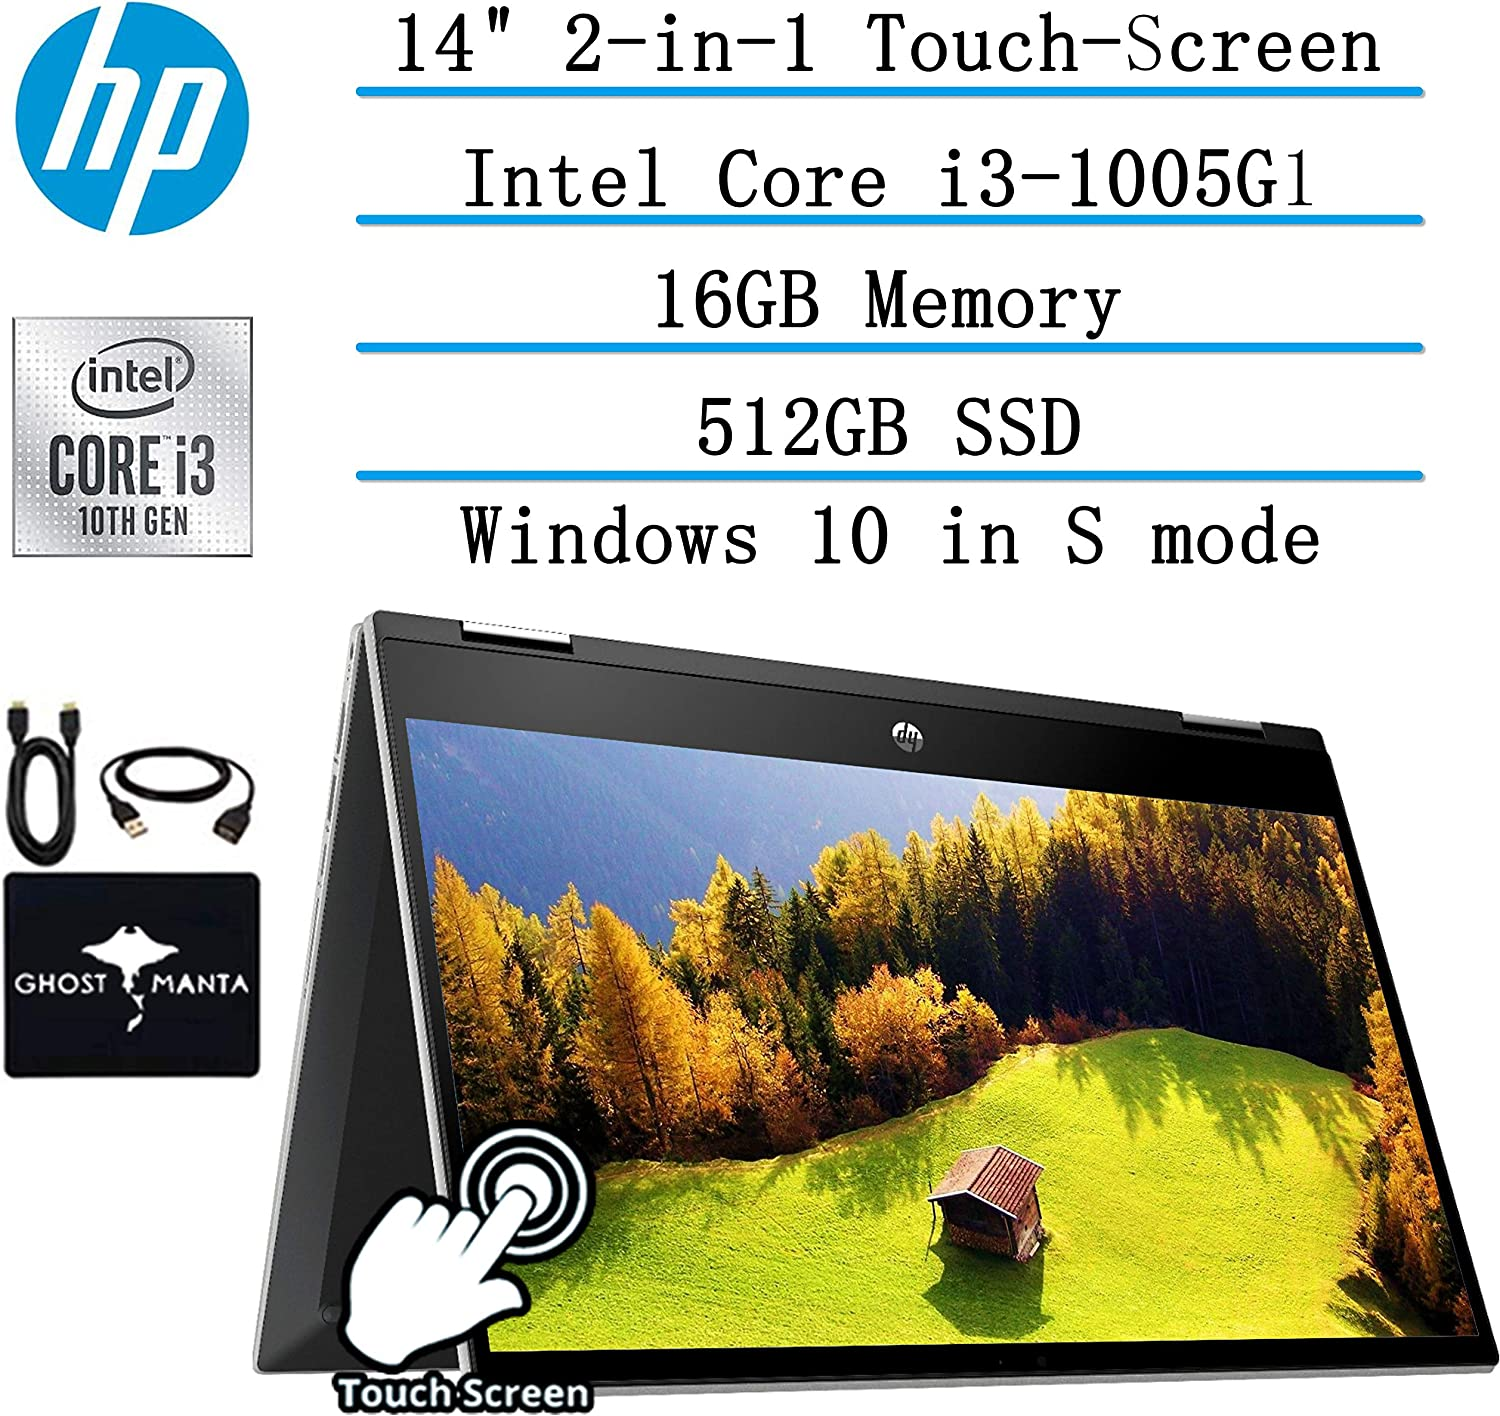 "2020 Newest HP Pavilion x360 2-in-1 Convertible 14"" HD Touch-Screen Laptop, 10th Gen Intel Core i3-1005G1(Up to 3.4GHz, Beat i5-7200U), 16GB RAM, 512GB SSD, Webcam, Wifi, HDMI, Win10, w/GM Accessories"